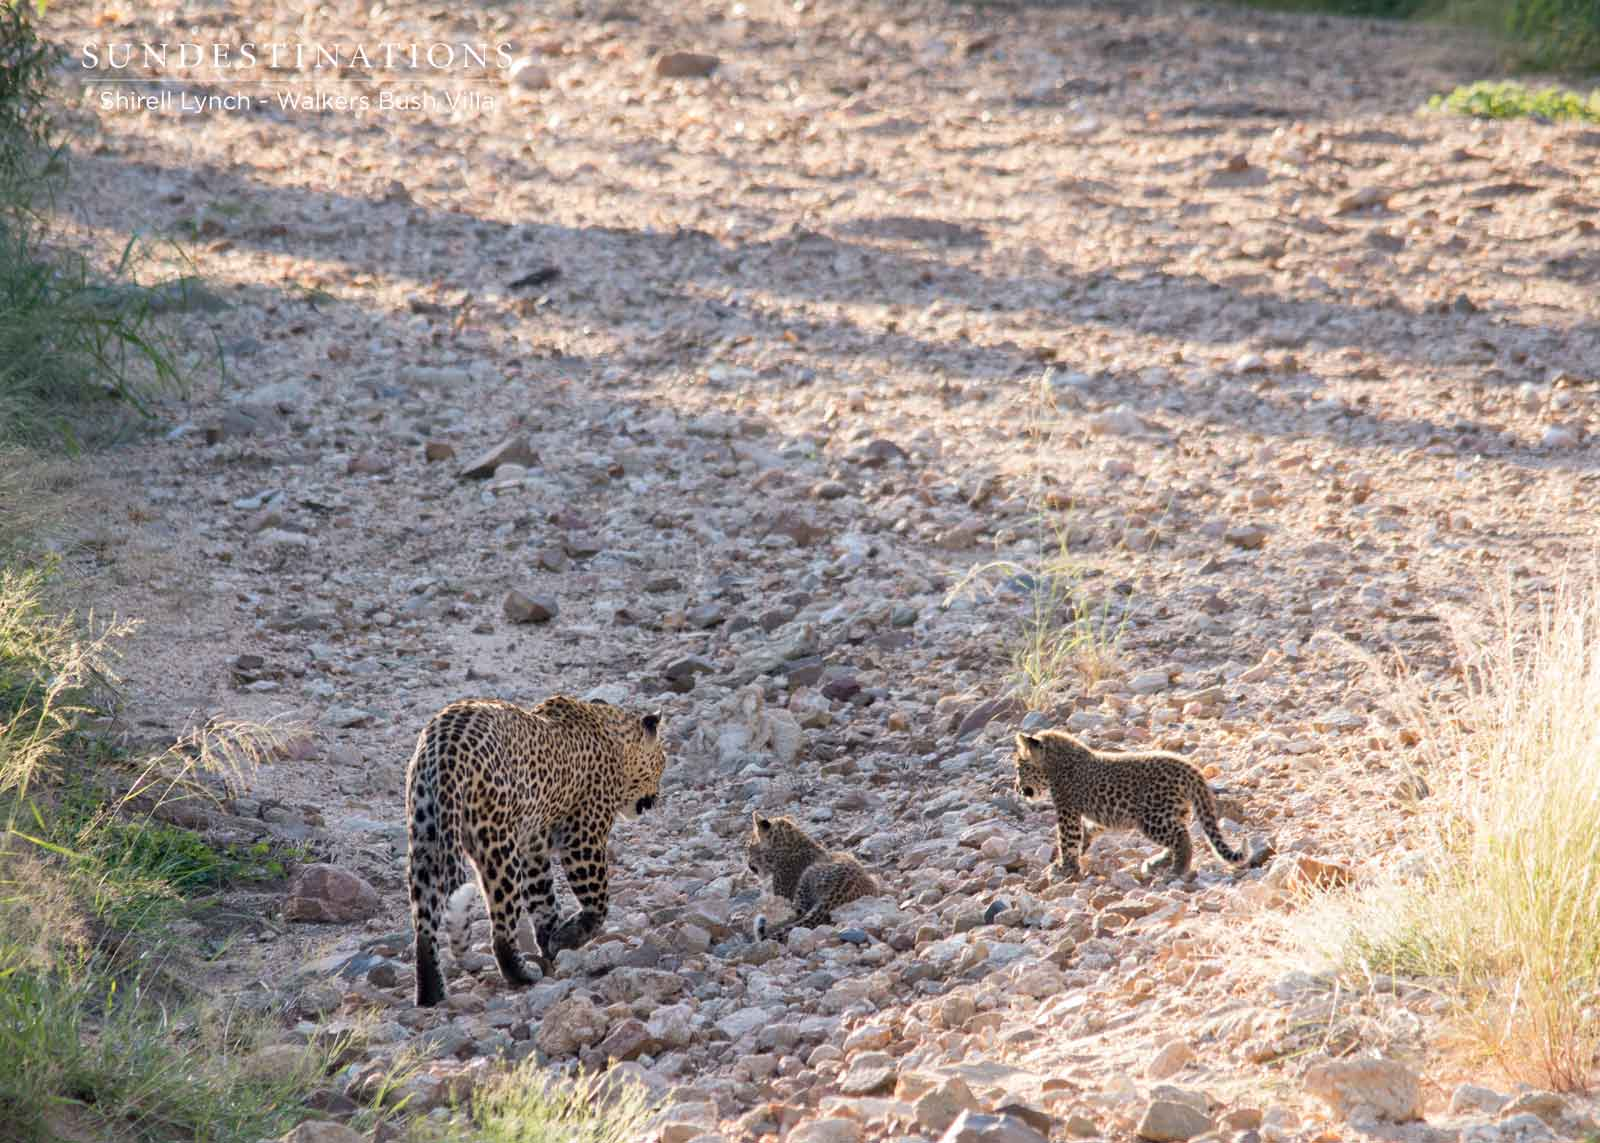 Walkers Bush Villa Leopard Cubs